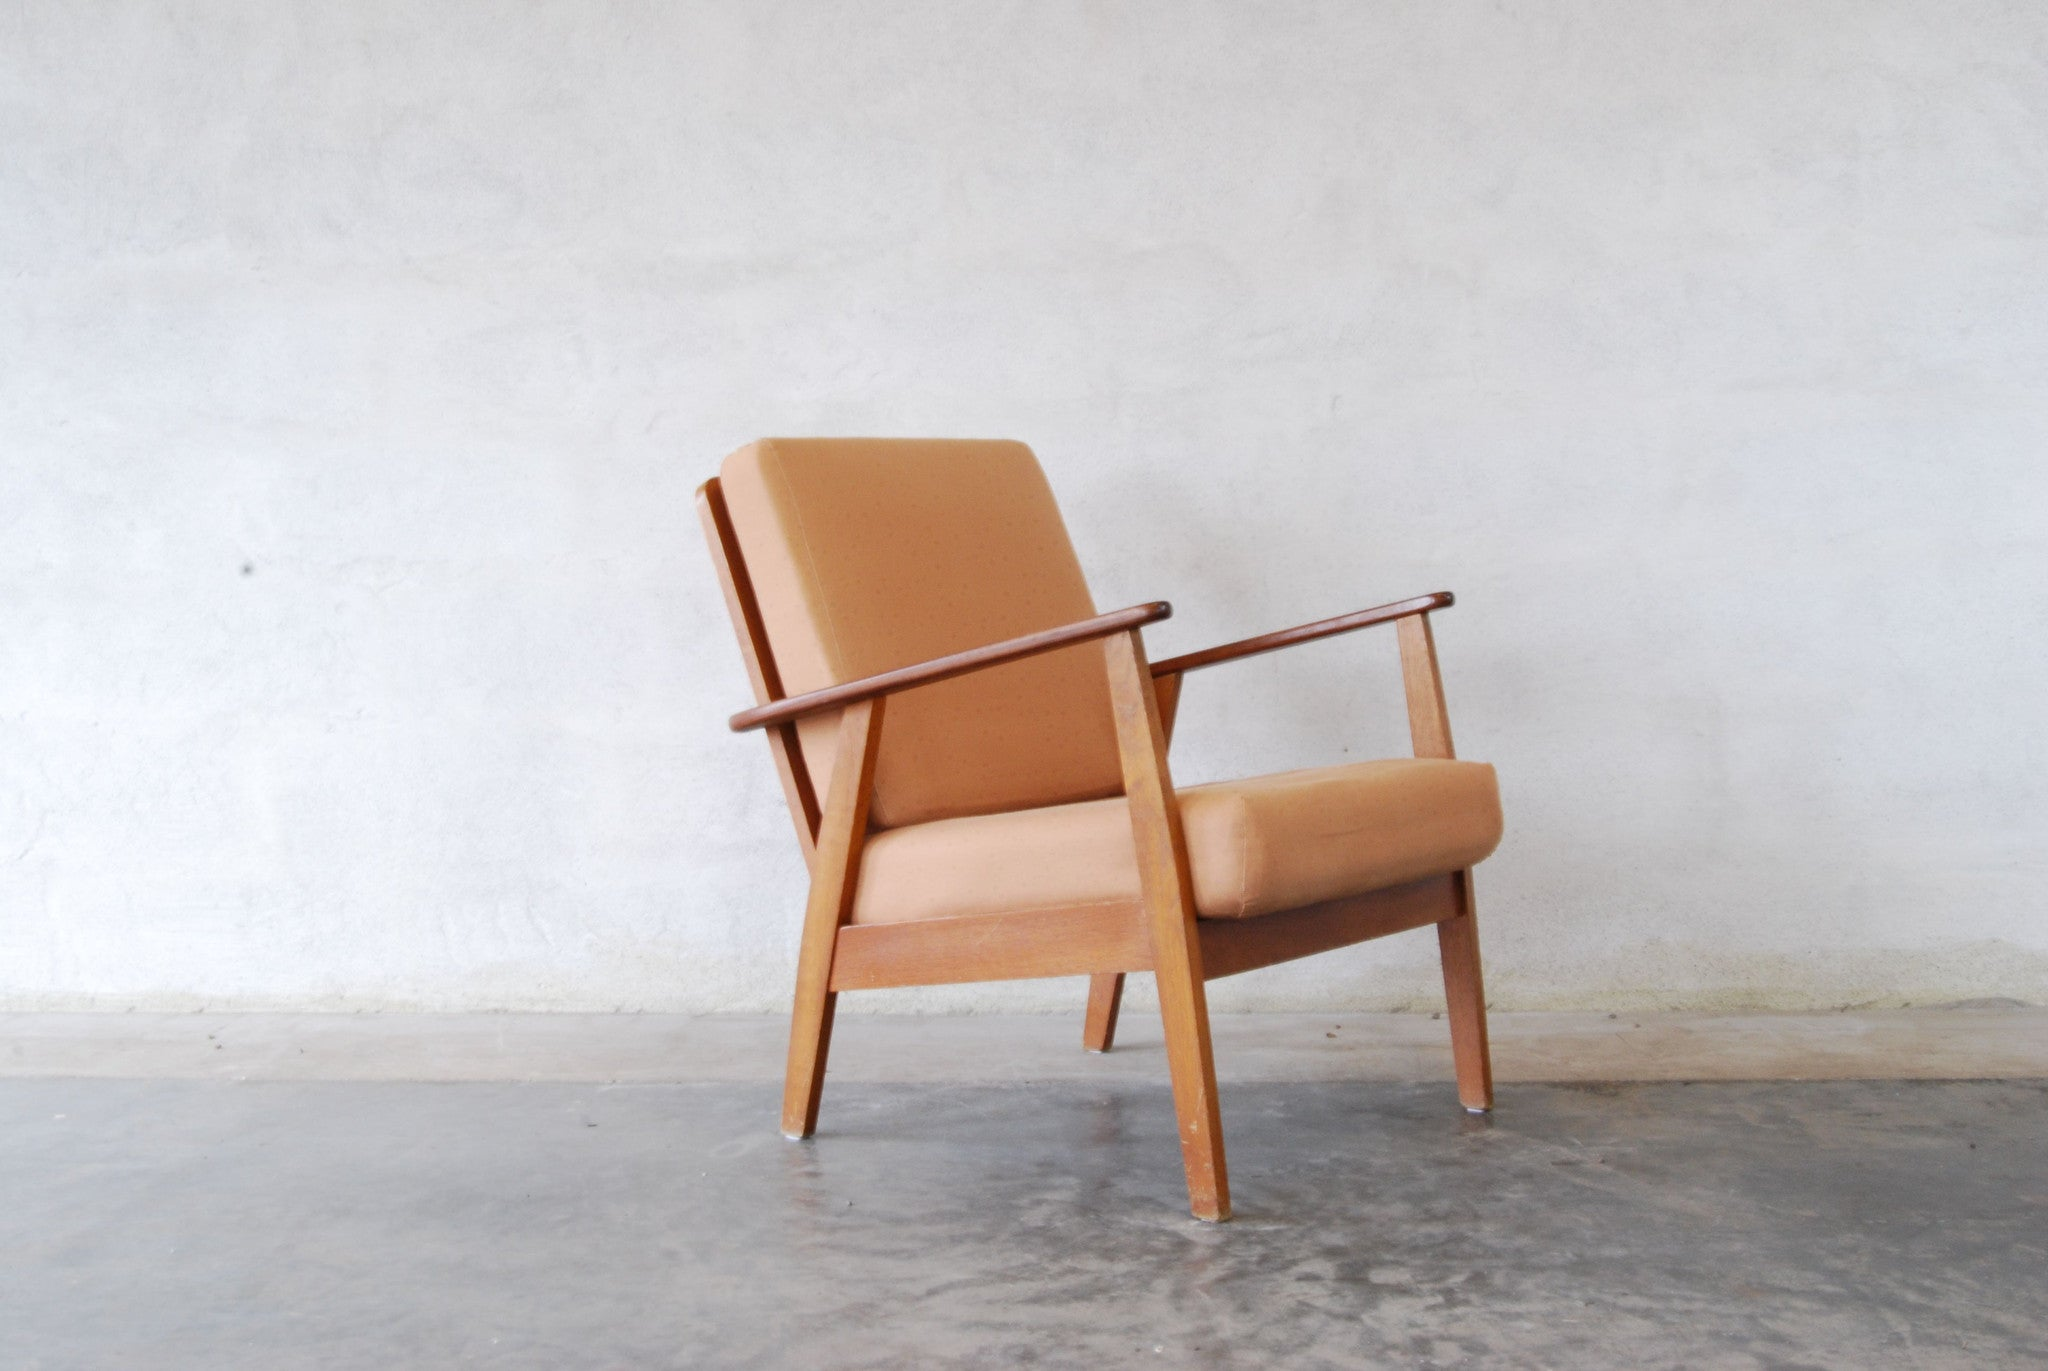 Teak/beech framed lounge chair no. 1